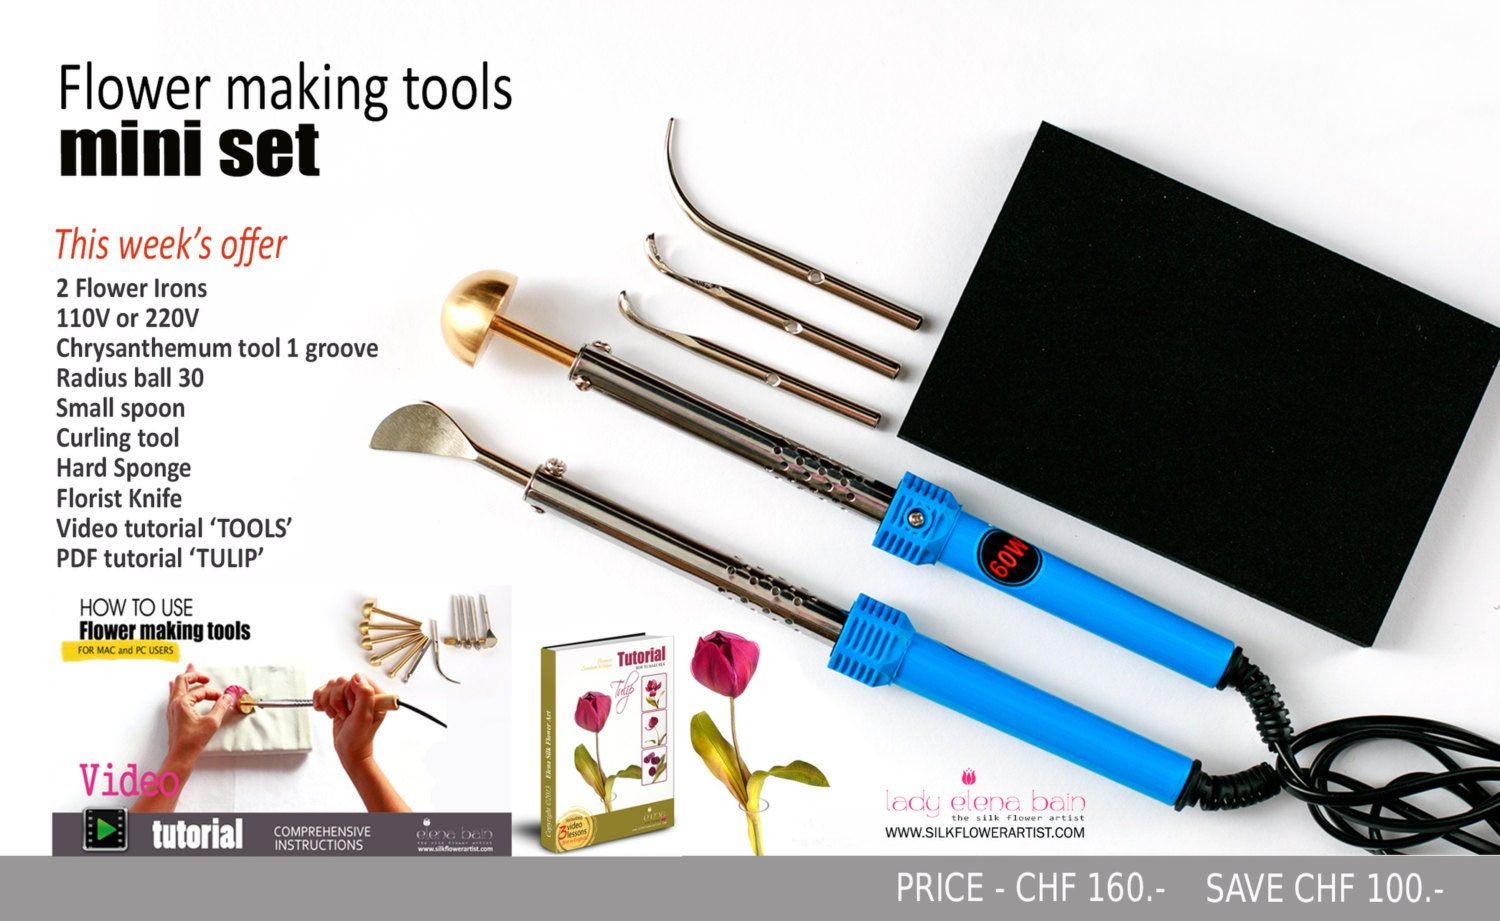 Mini Set Genuine Flower Making Tools Etsy